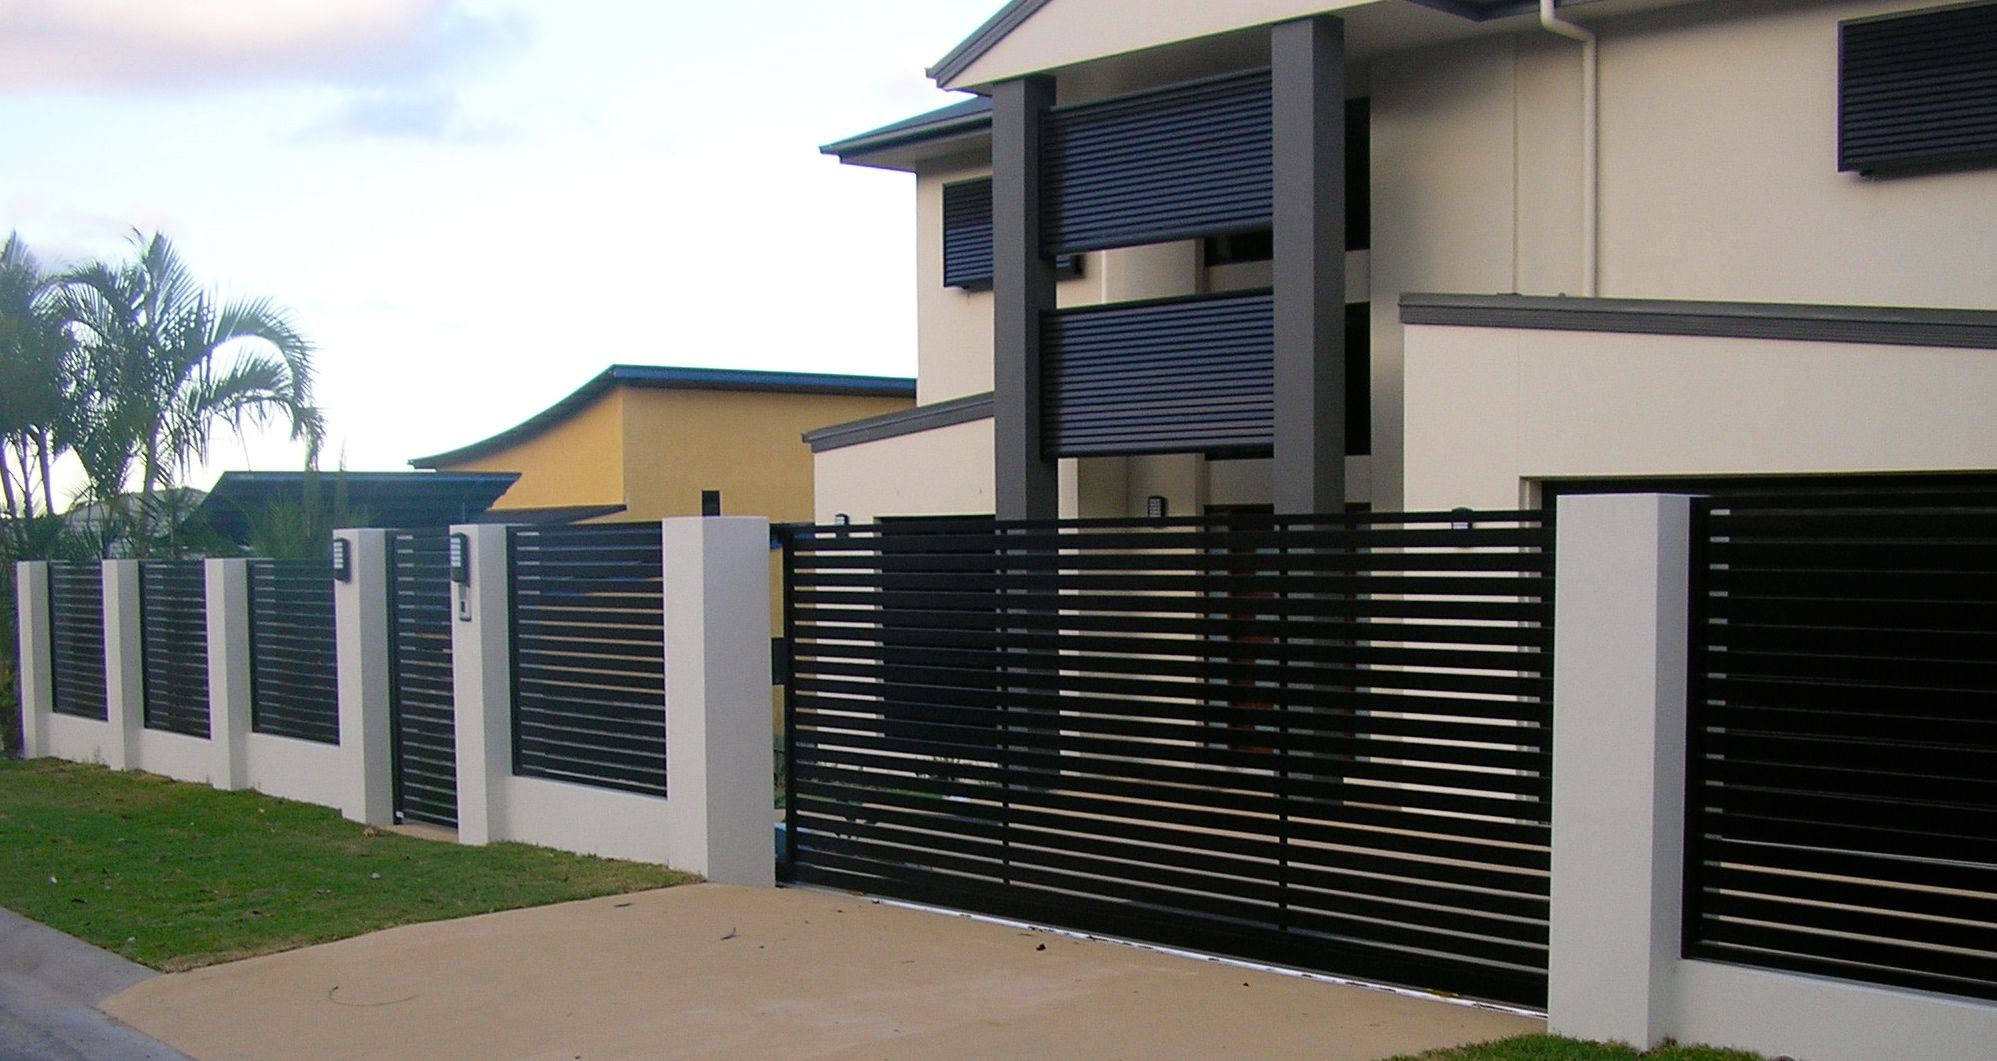 Amazing Smart And Beautiful Fence Panels And Gates Idea In Sliding Gate  Pedestrian Gate And Fence Panels Design : 36 Amazing Smart And Beautiful  Fence ...